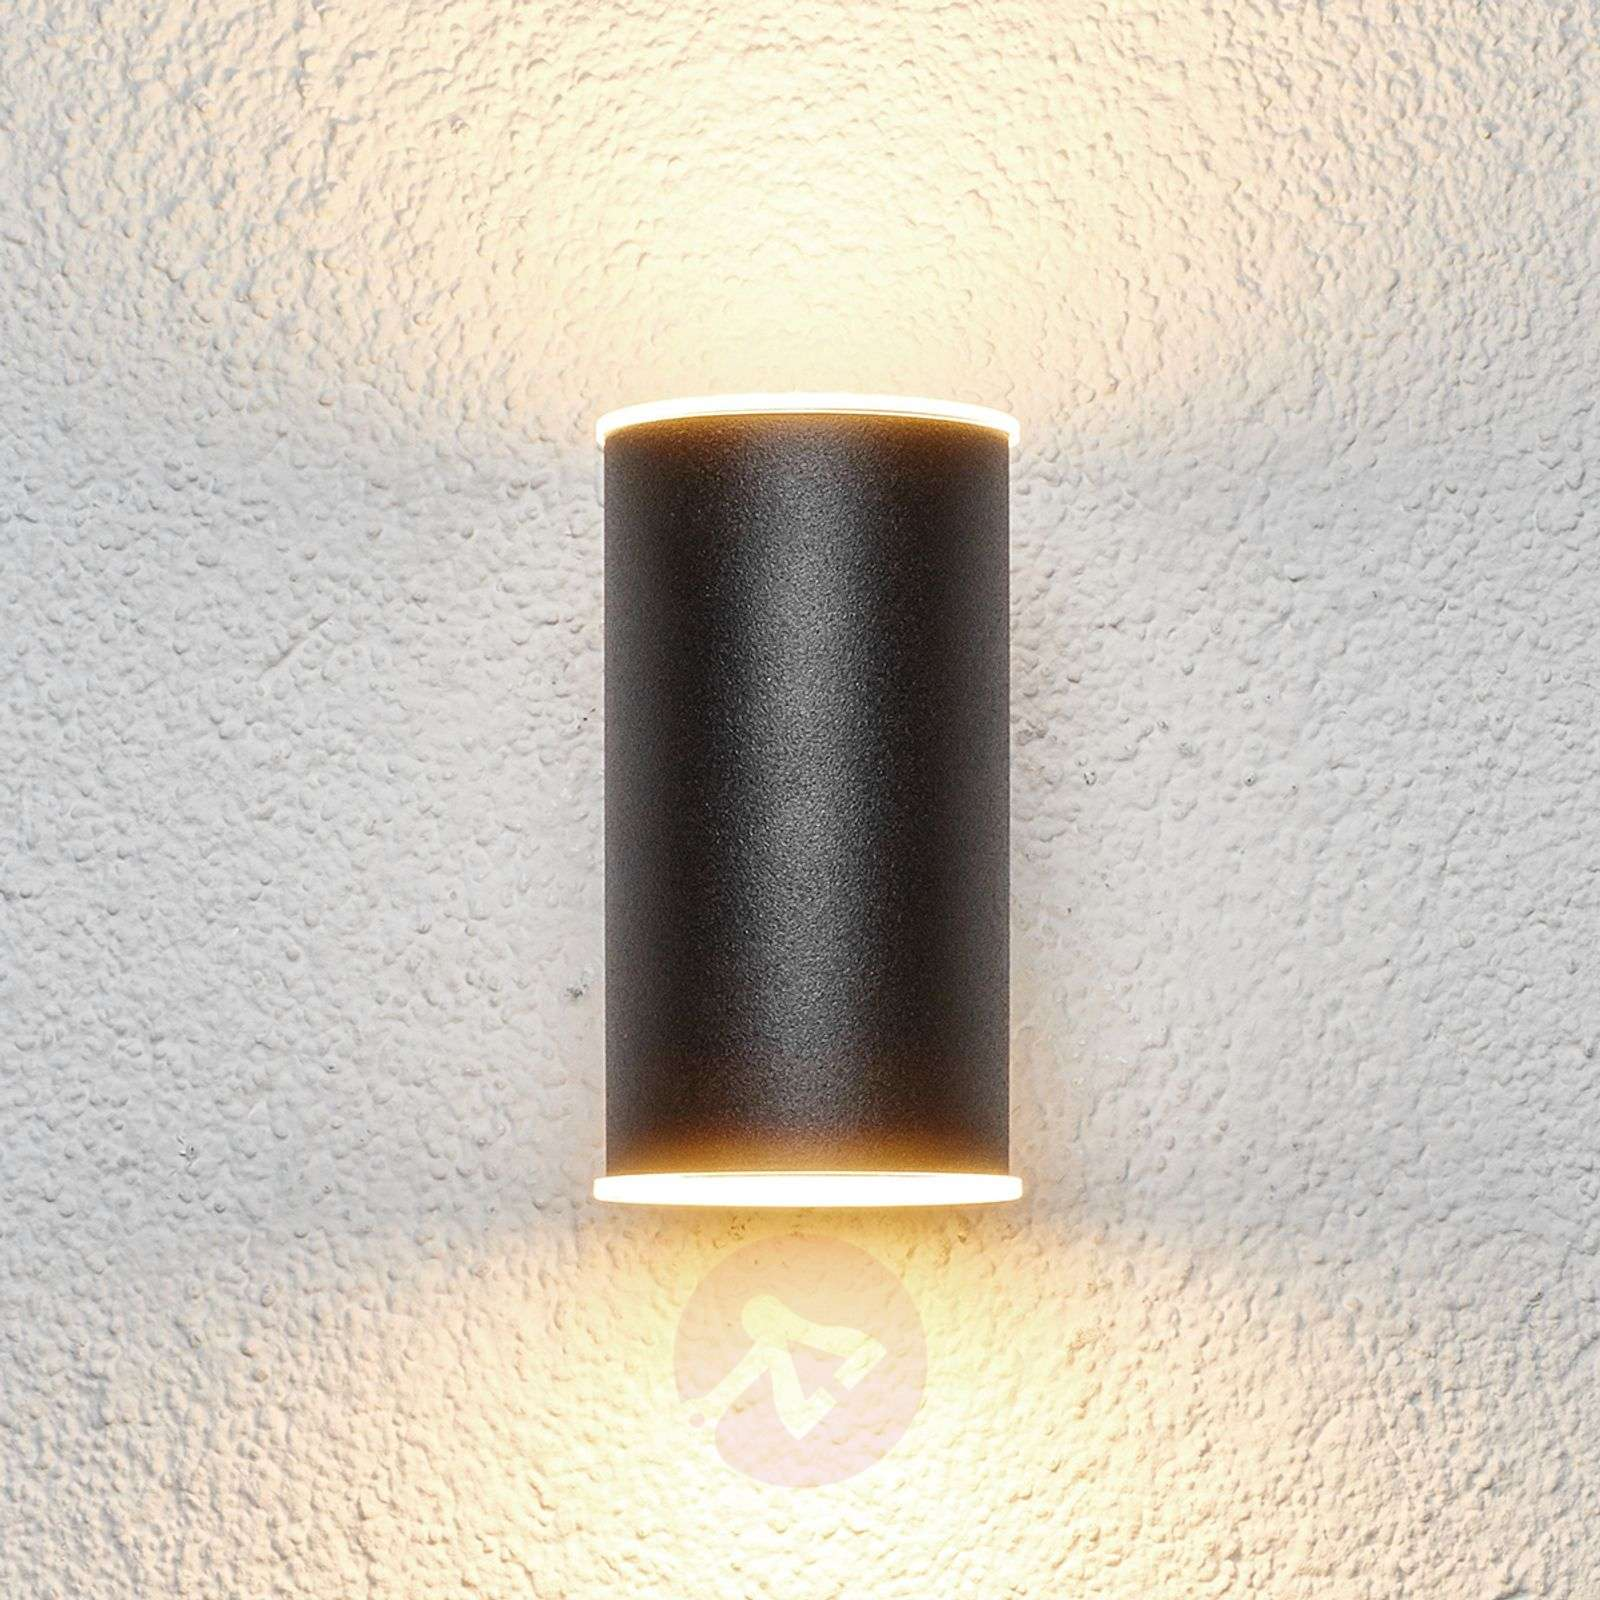 Effective Morena LED outdoor wall light-9988058-01